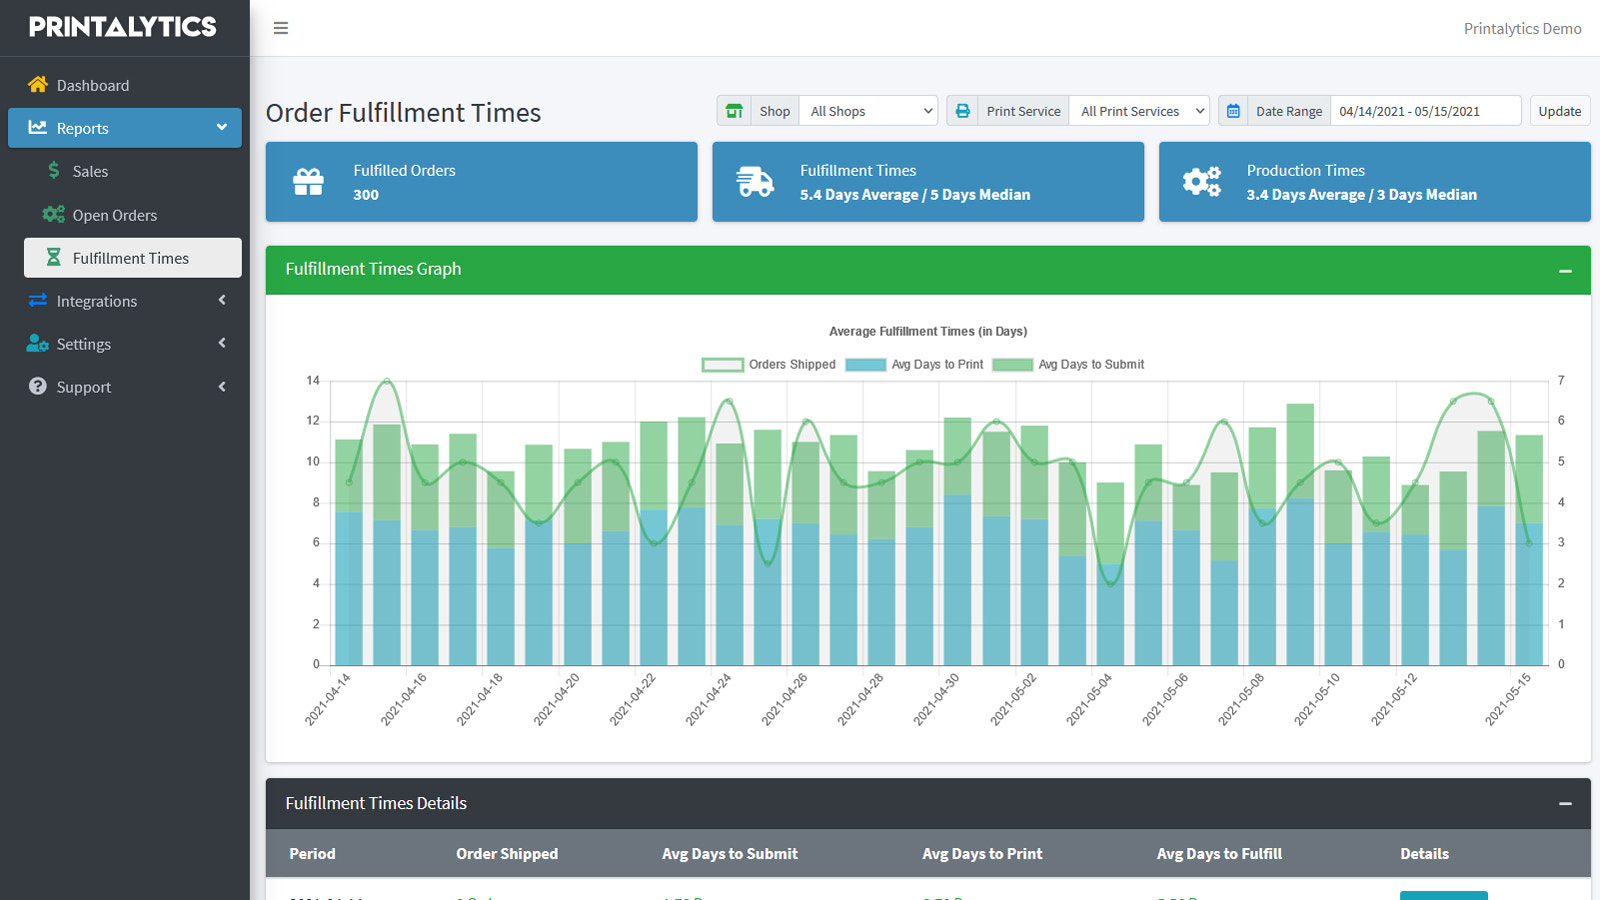 Fulfillment Performance Historical Reporting